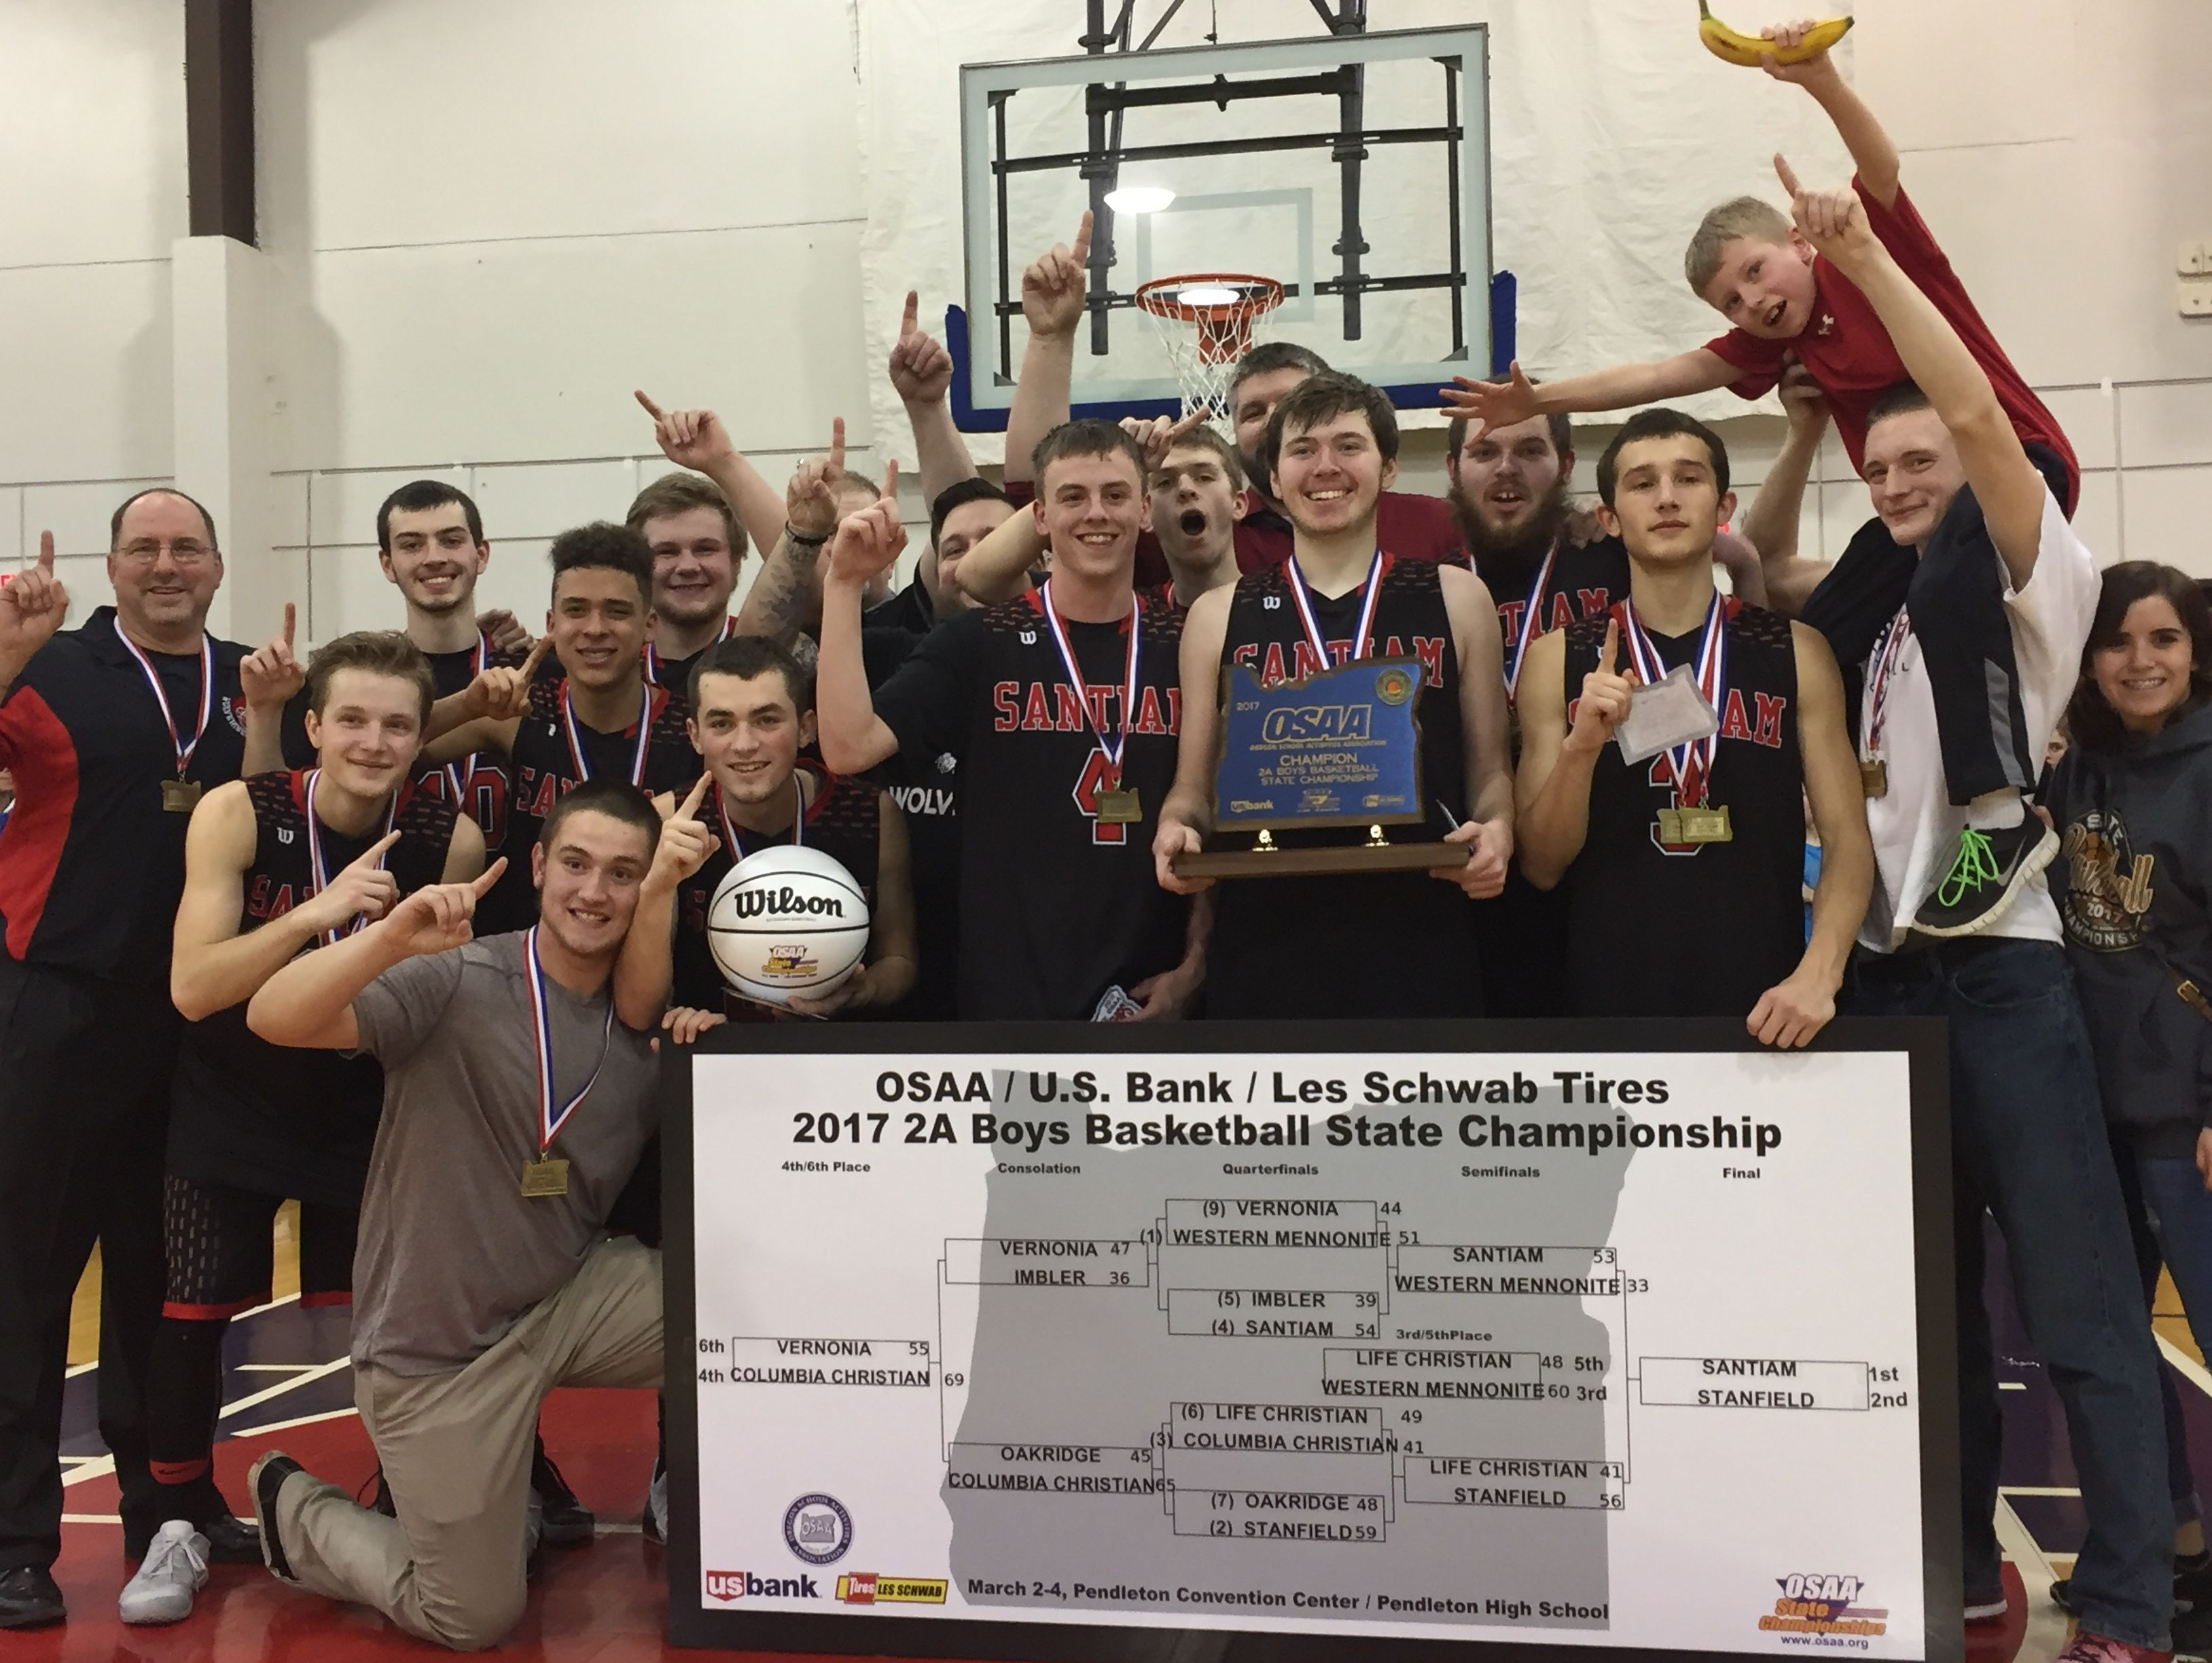 Santiam celebrates after winning the OSAA Class 2A boys state championship at Pendleton Convention Center on March 4, 2017.